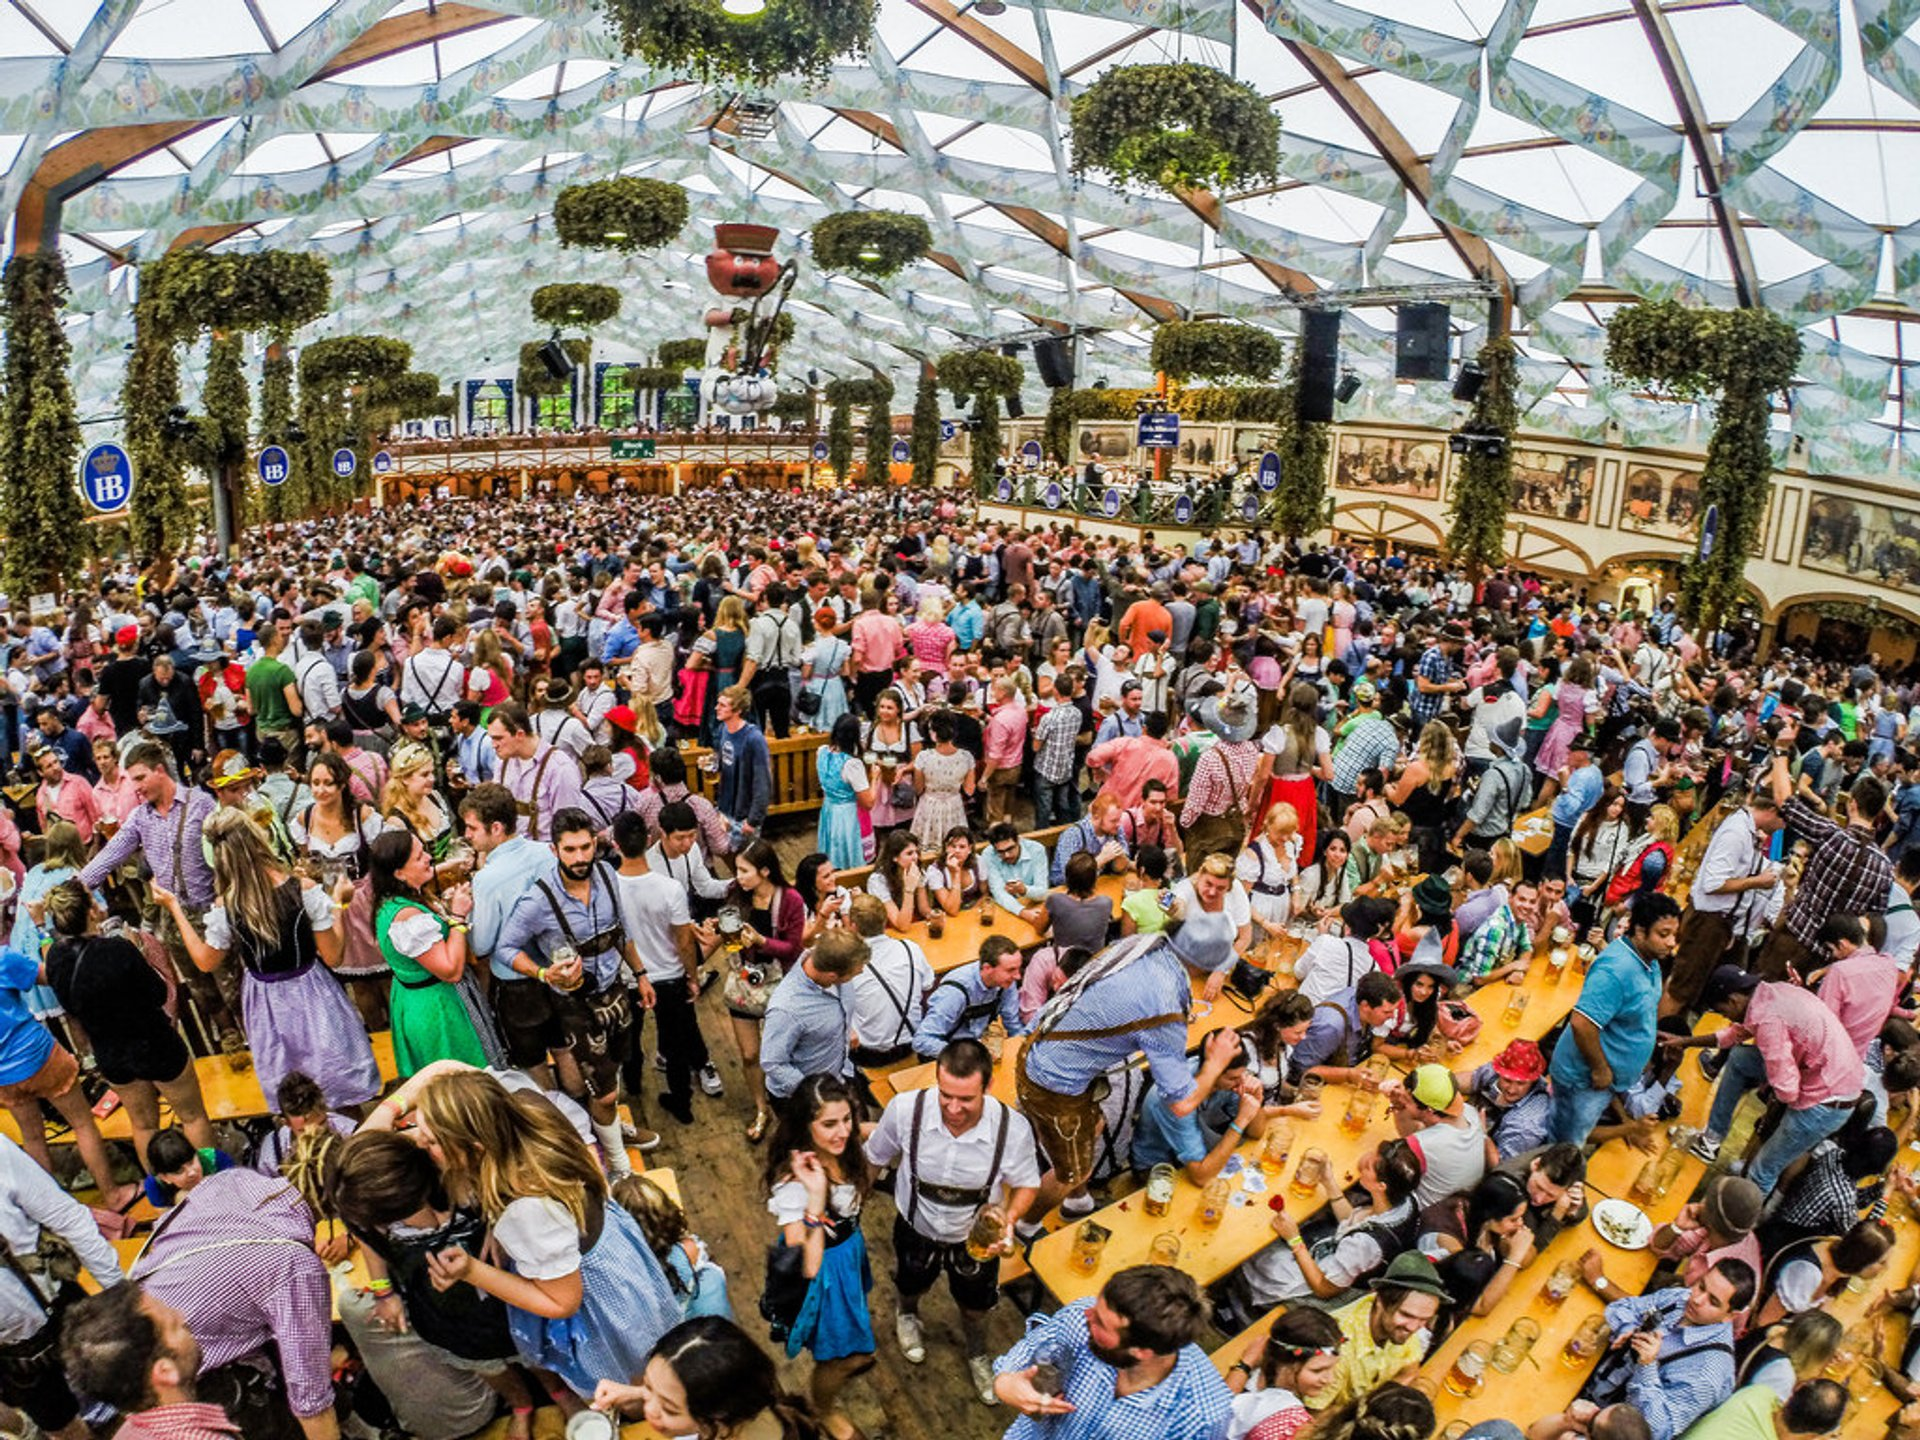 Best time for Oktoberfest in Munich 2020